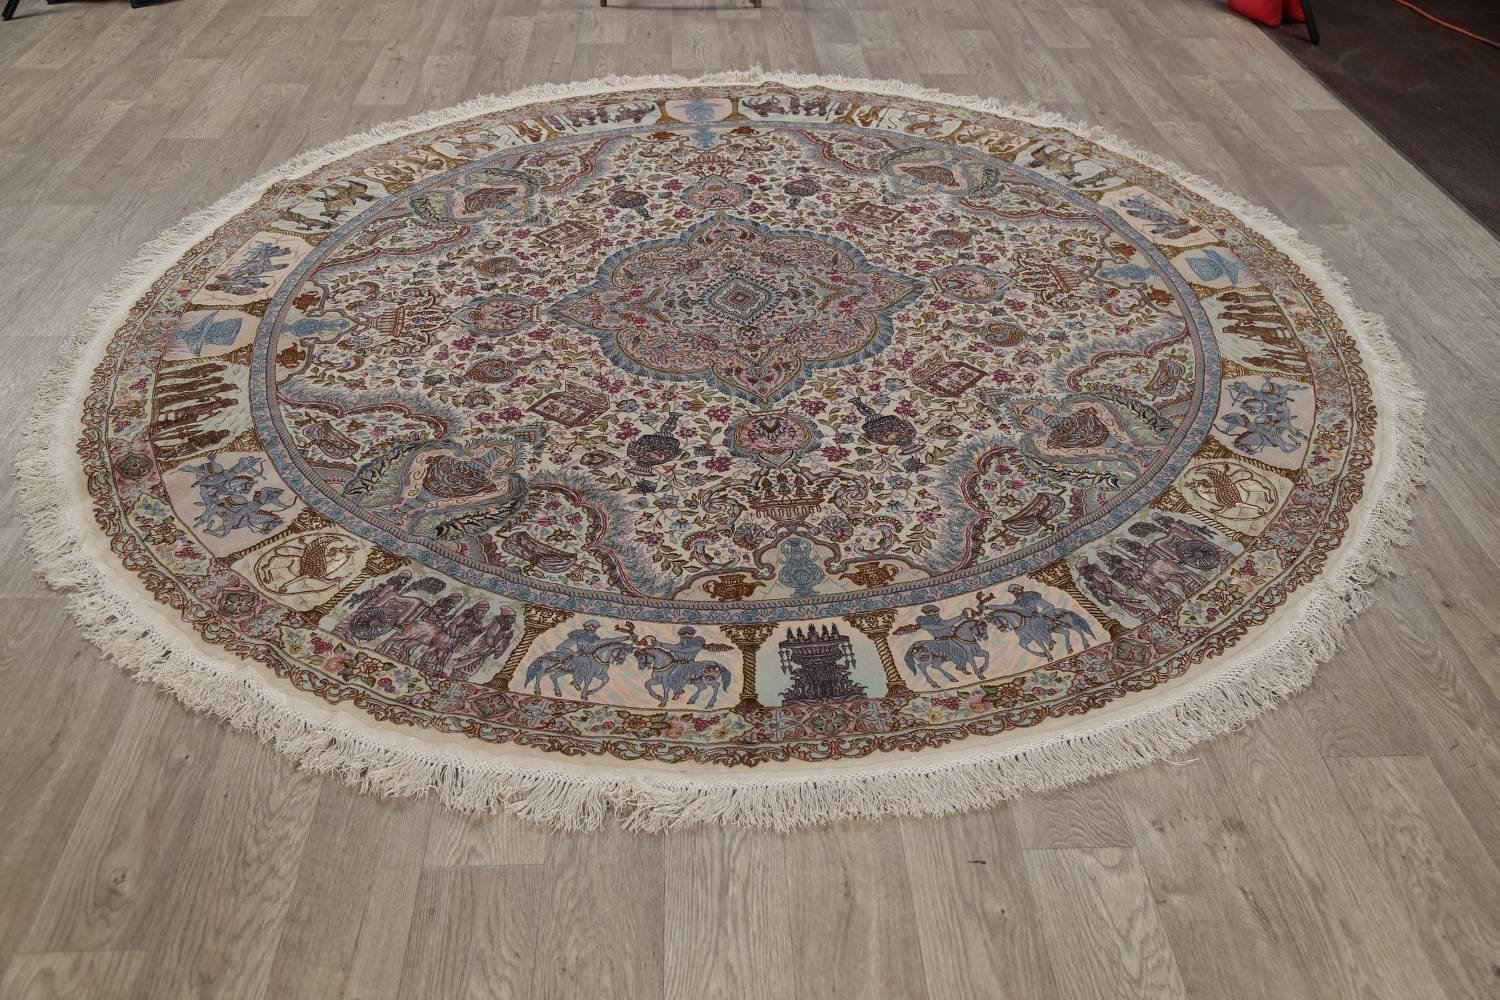 Antique Vegetable Dye Tabriz Persian Hand-Knotted 8x8 Wool Silk Round Rug image 16